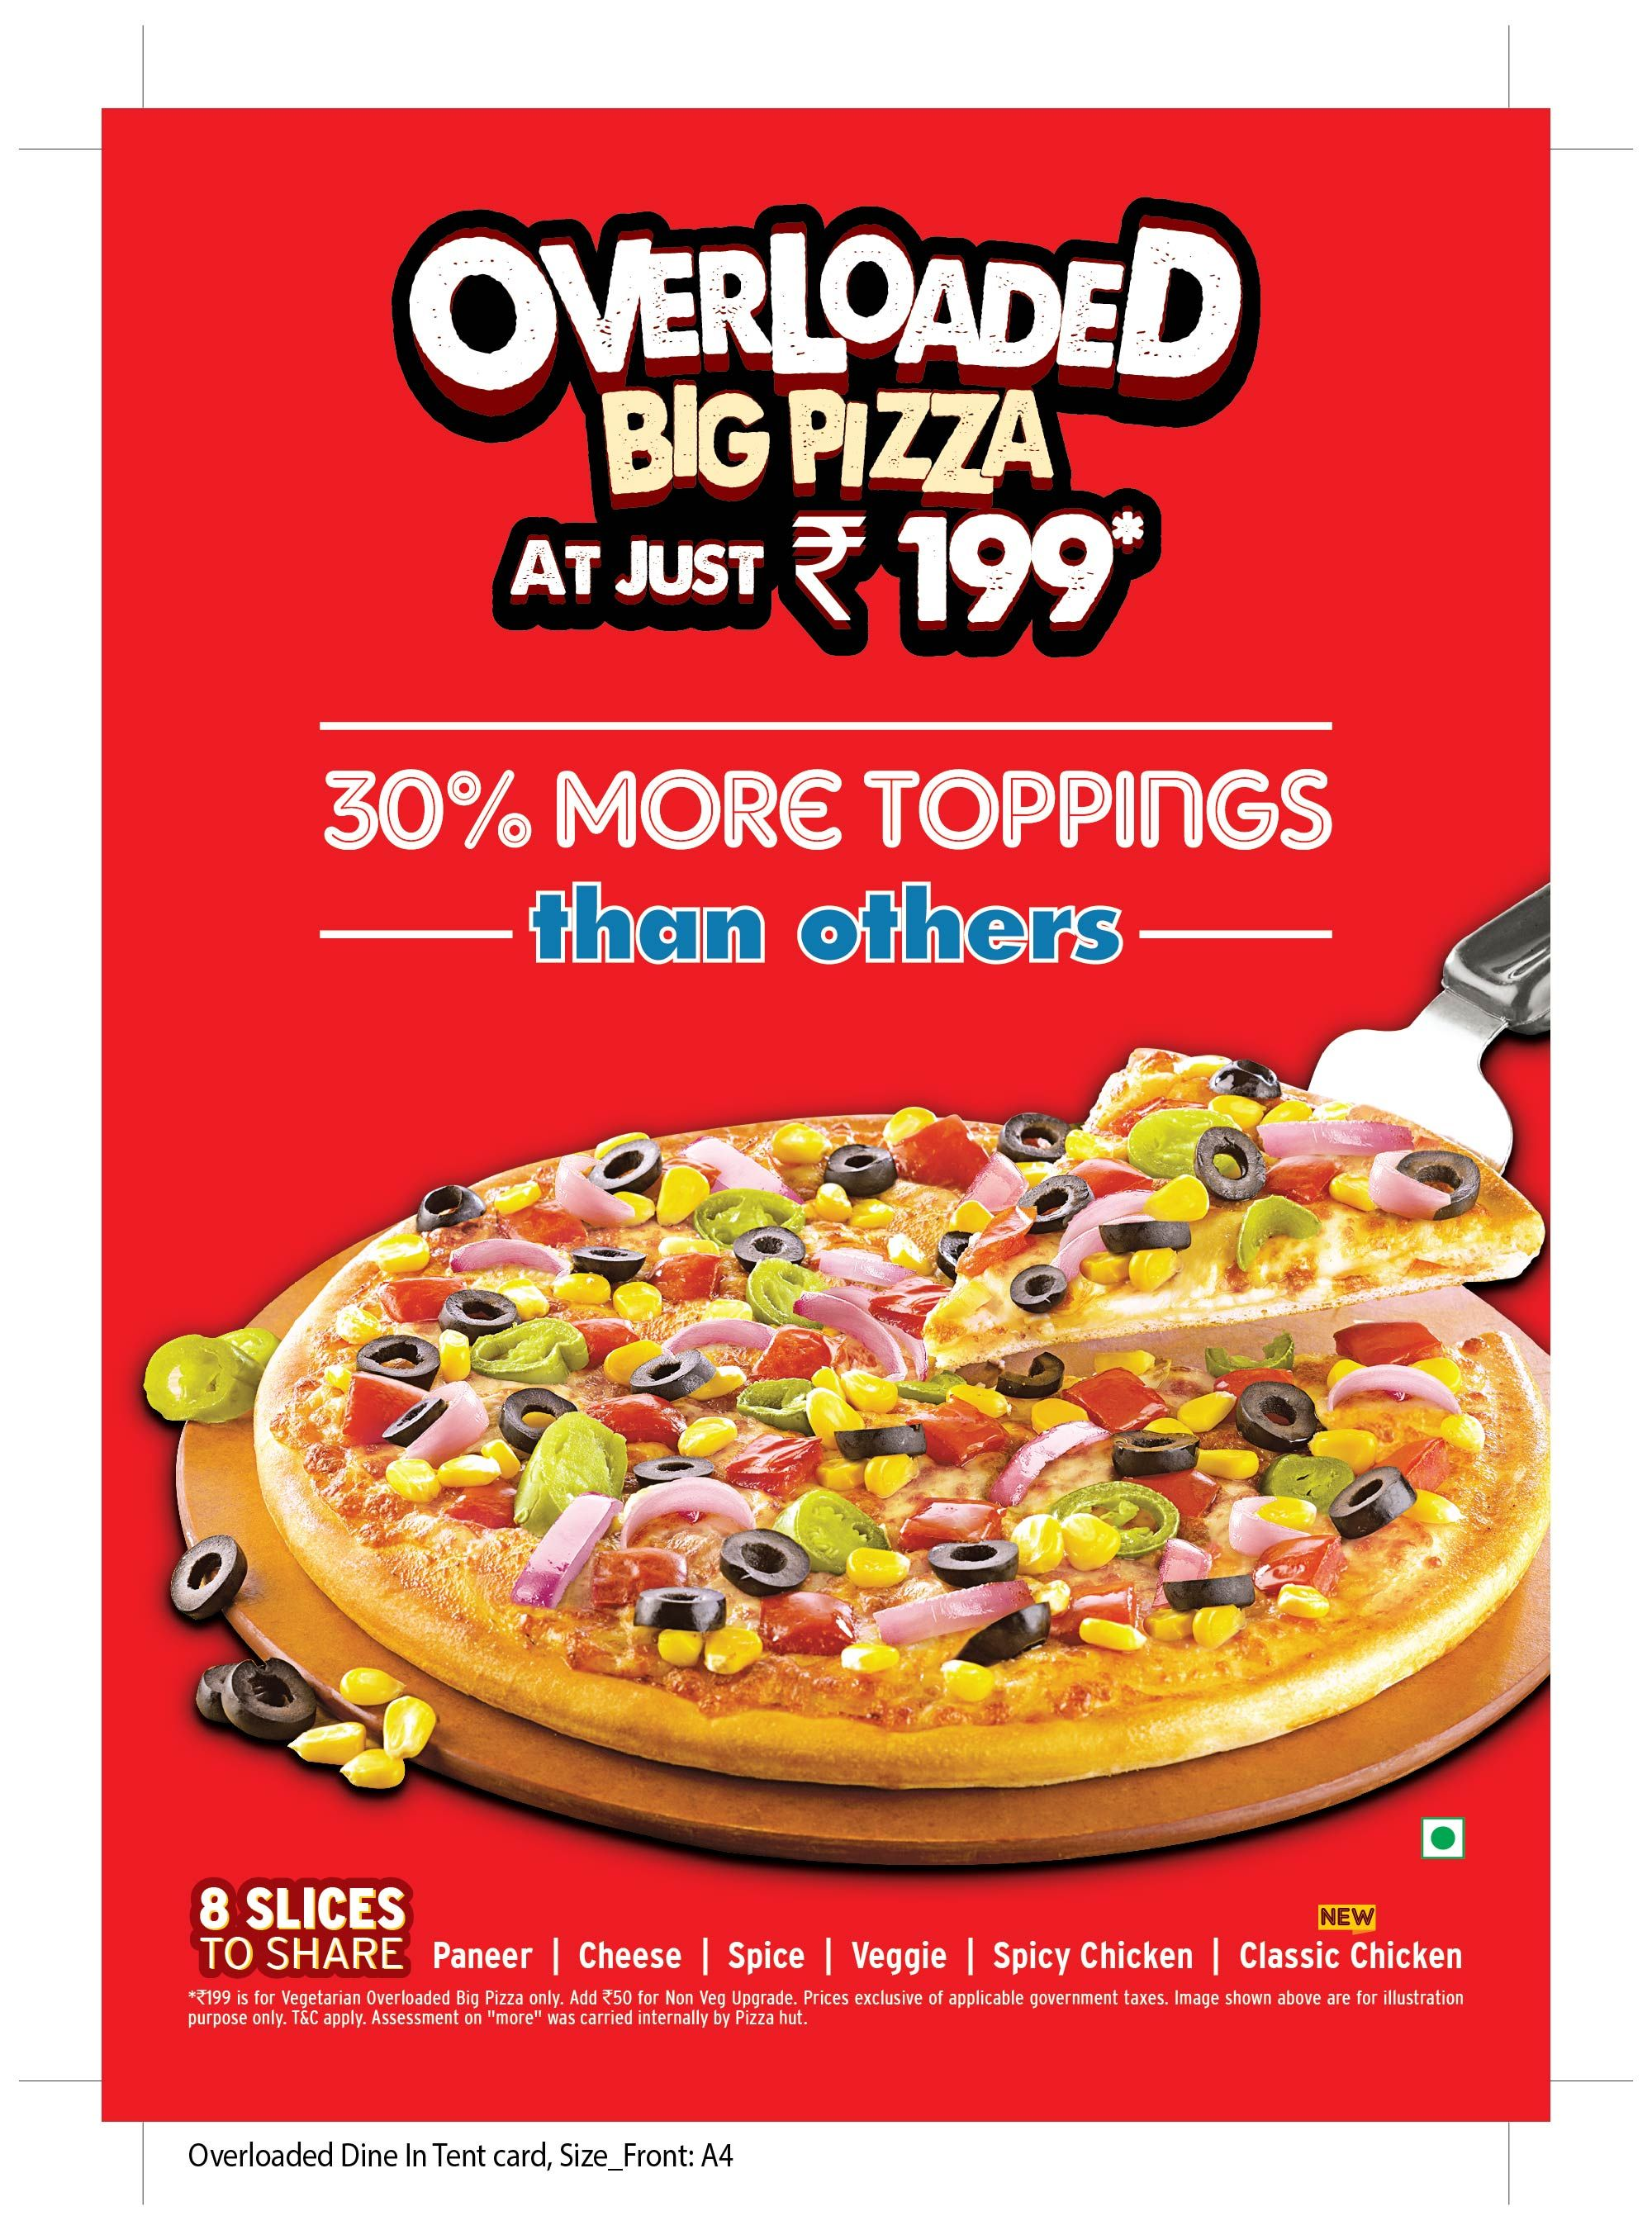 0c752321069b612e8de44edd374ef60e - Pizza Hut Com Online Application